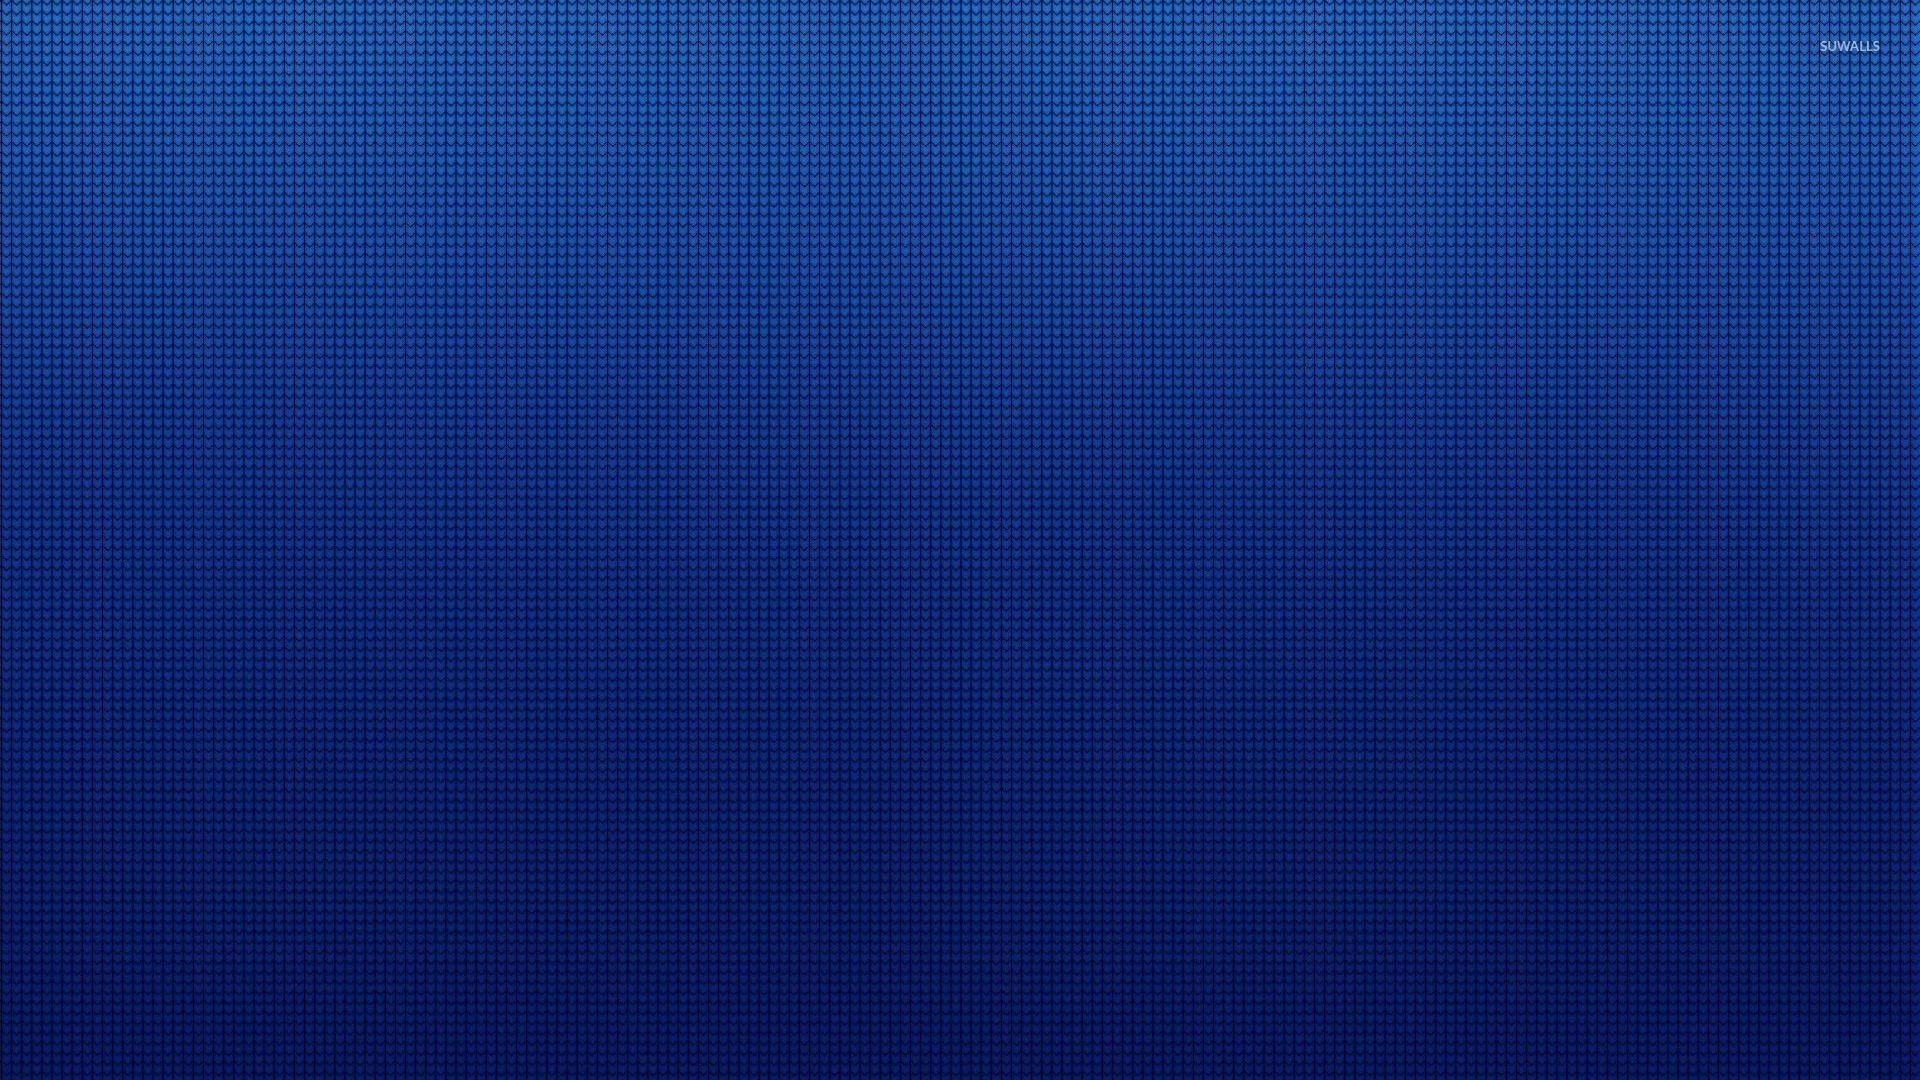 Blue pattern wallpaper   Abstract wallpapers   26263 1920x1080